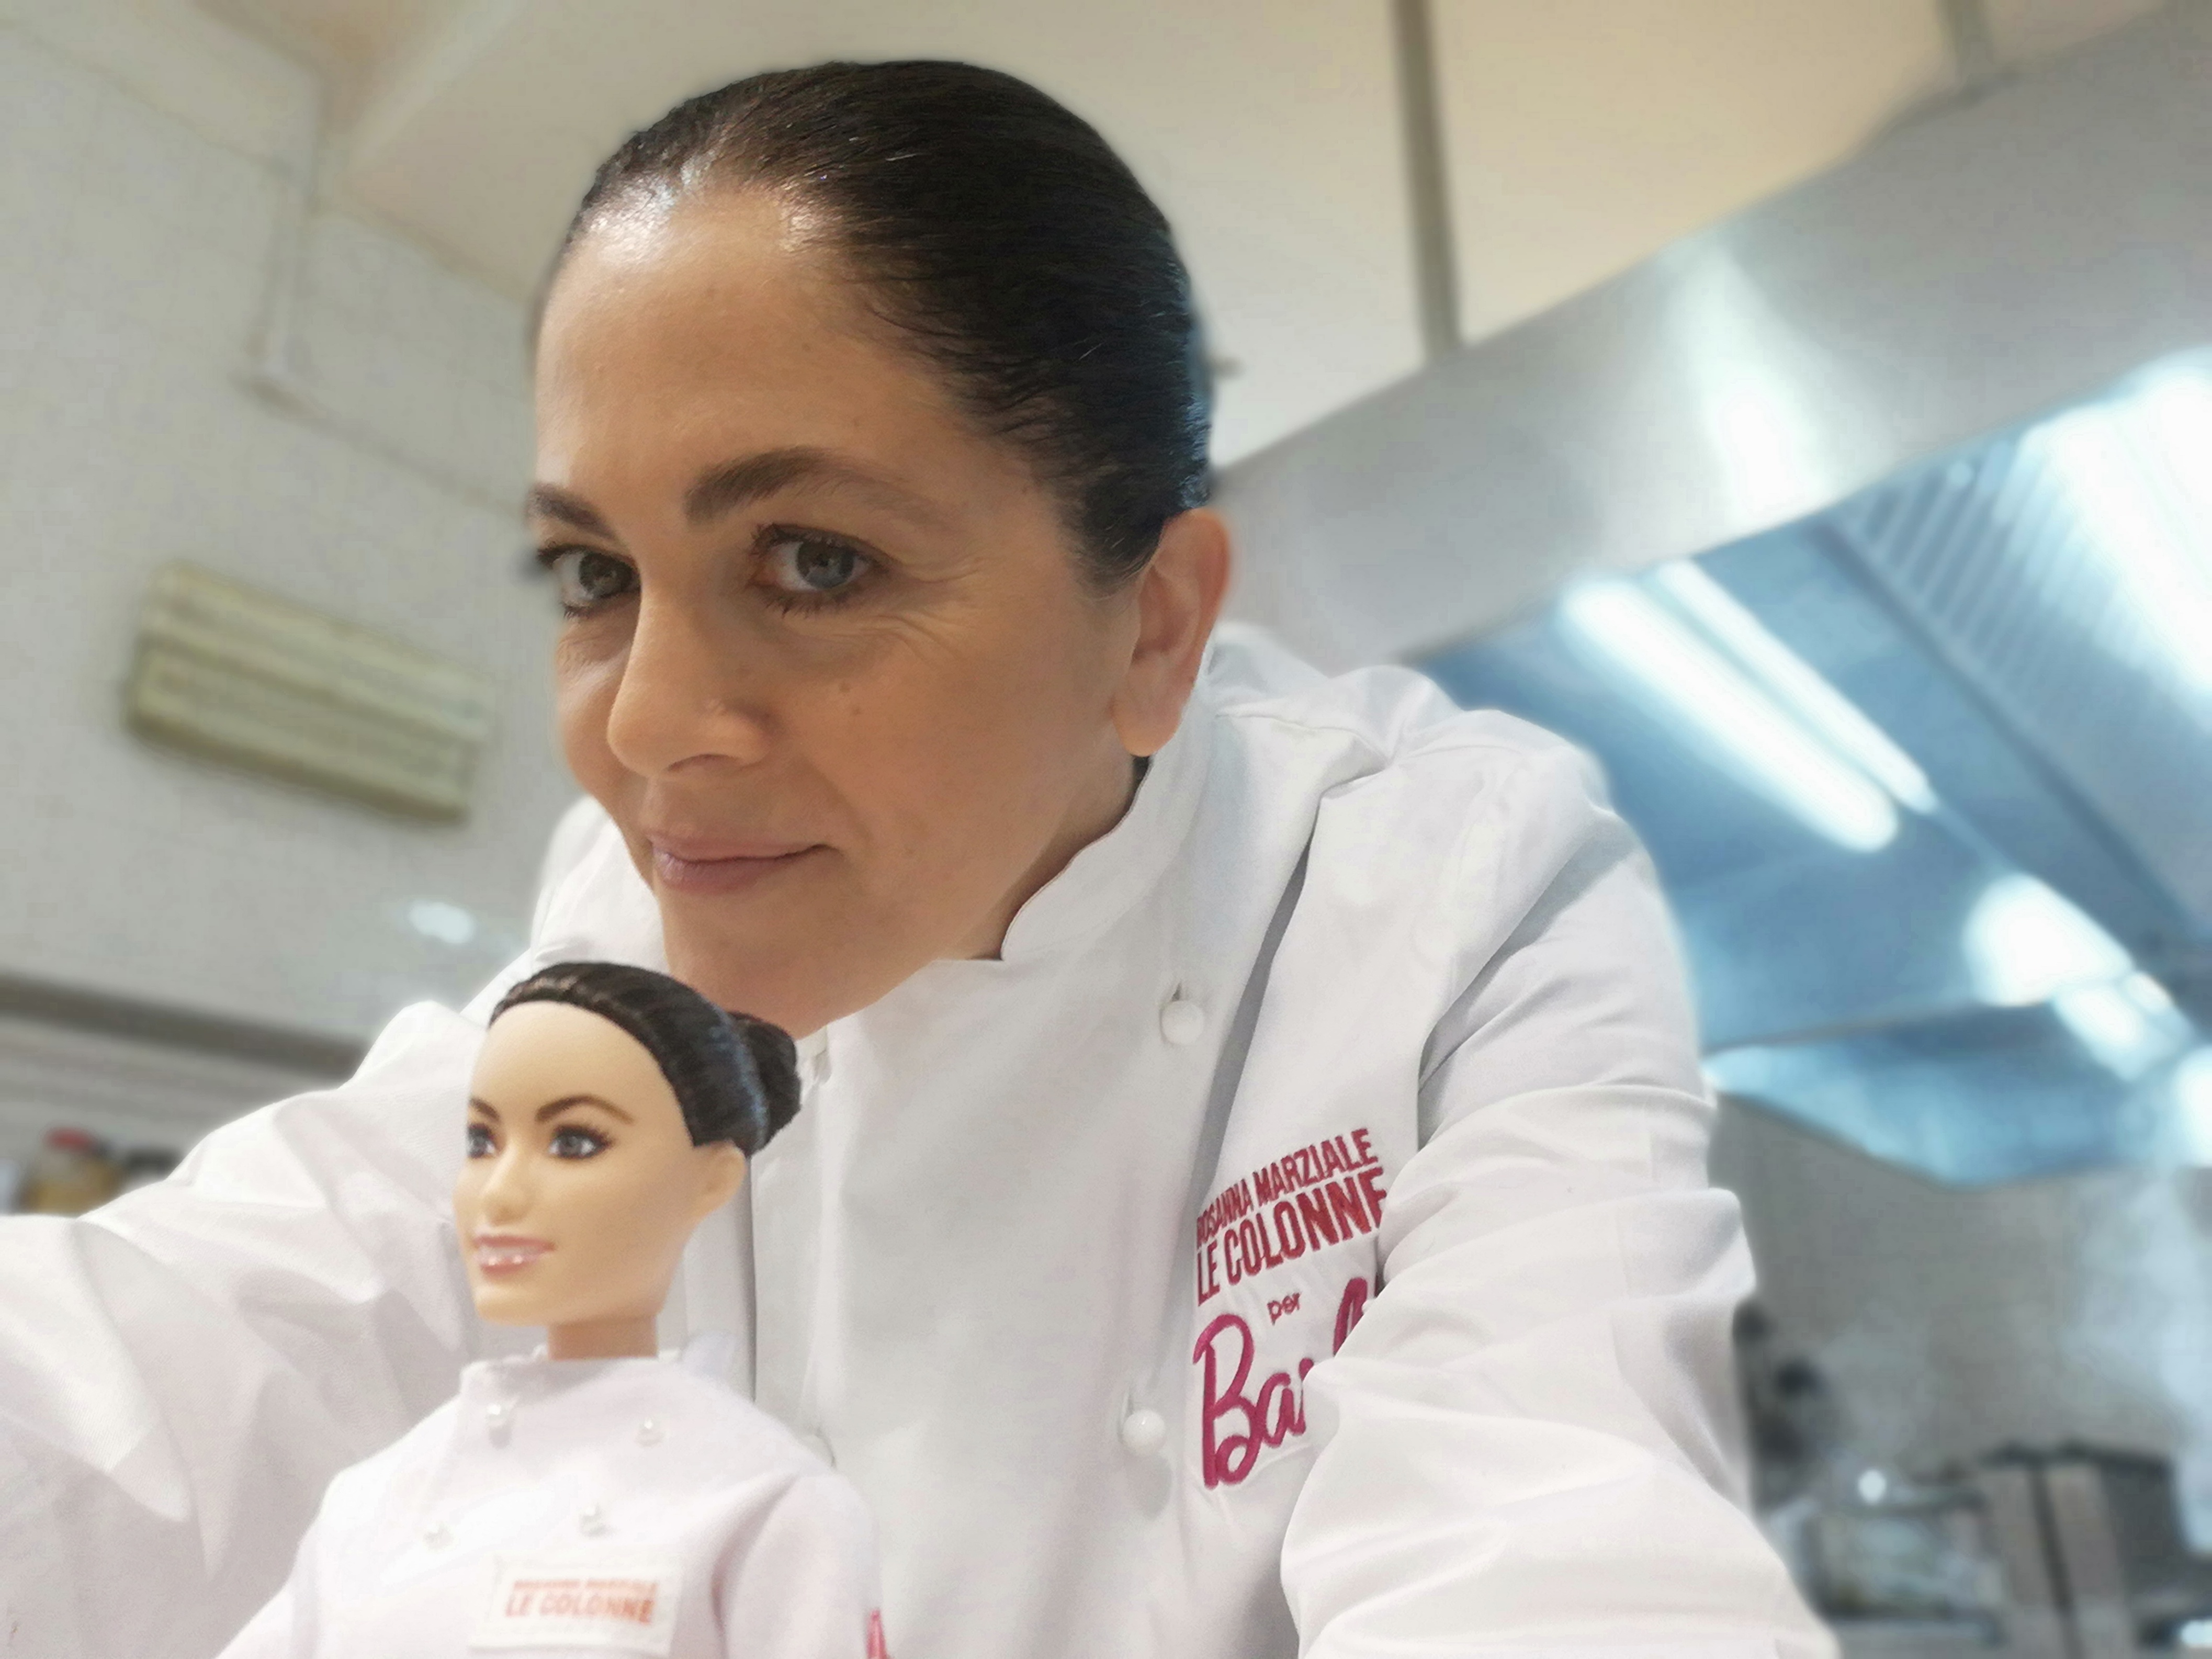 Rosanna Marziale con Barbie Chef